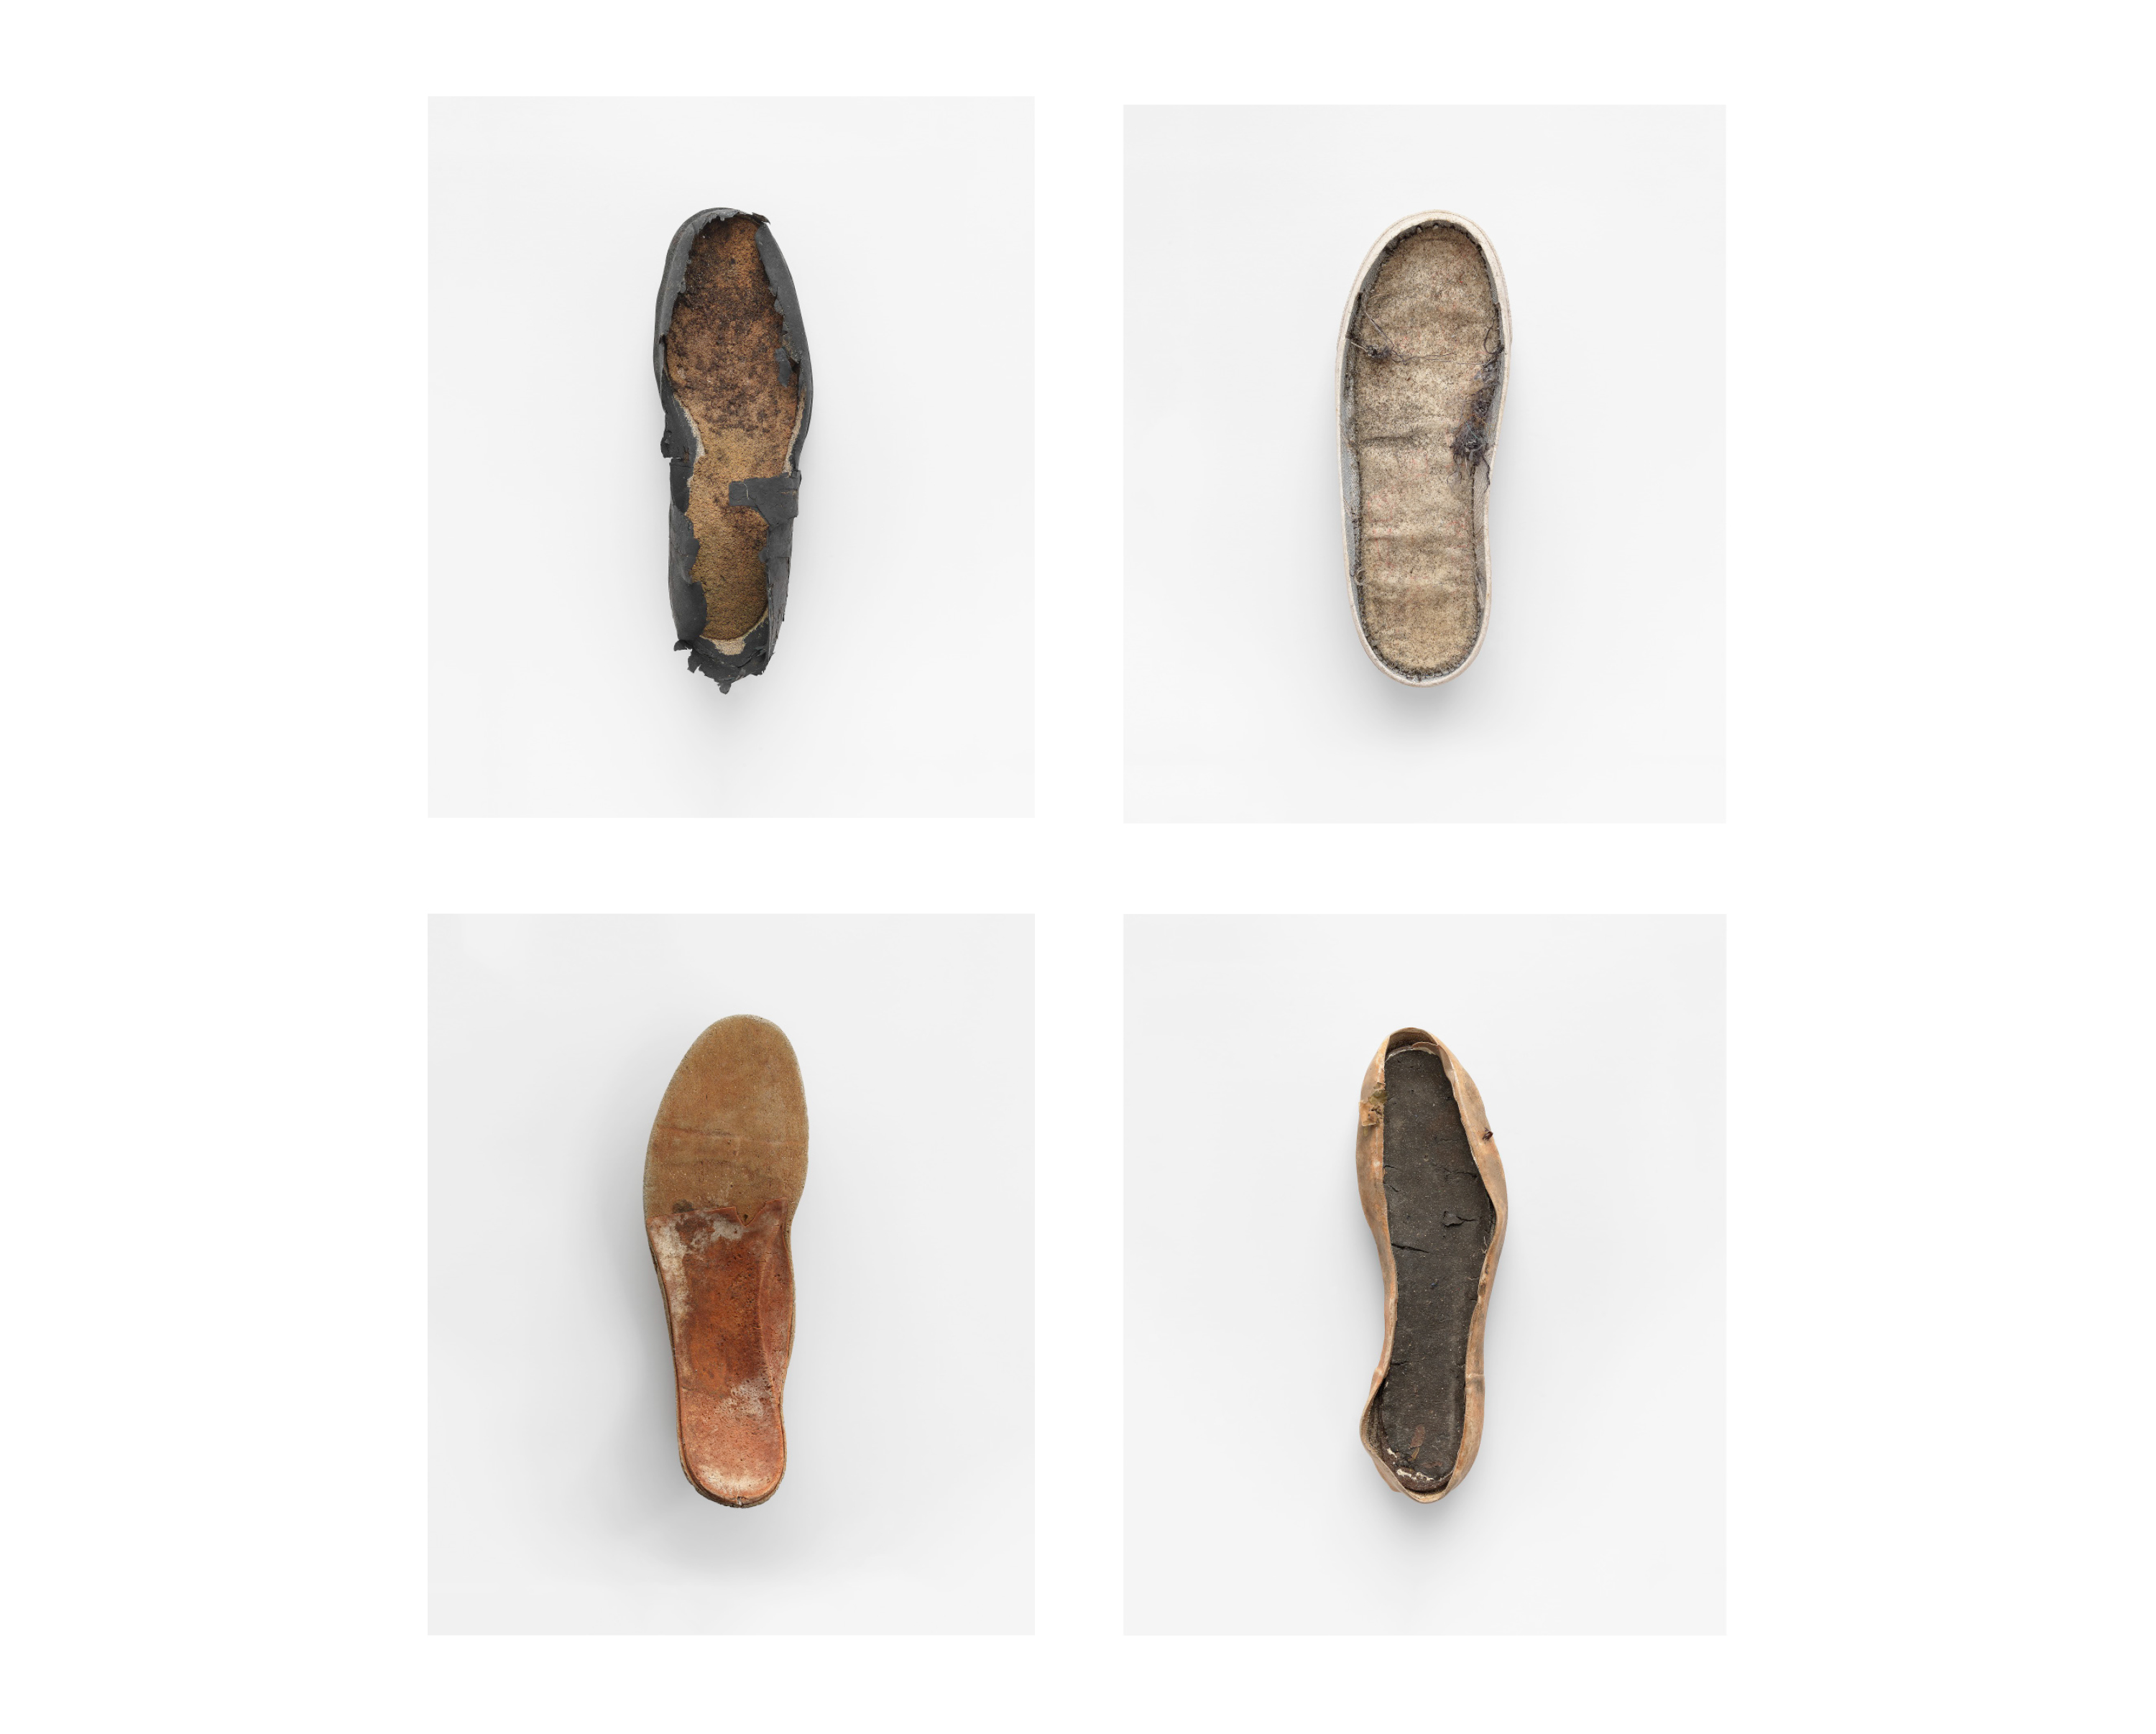 Photograph of four degraded shoe soles